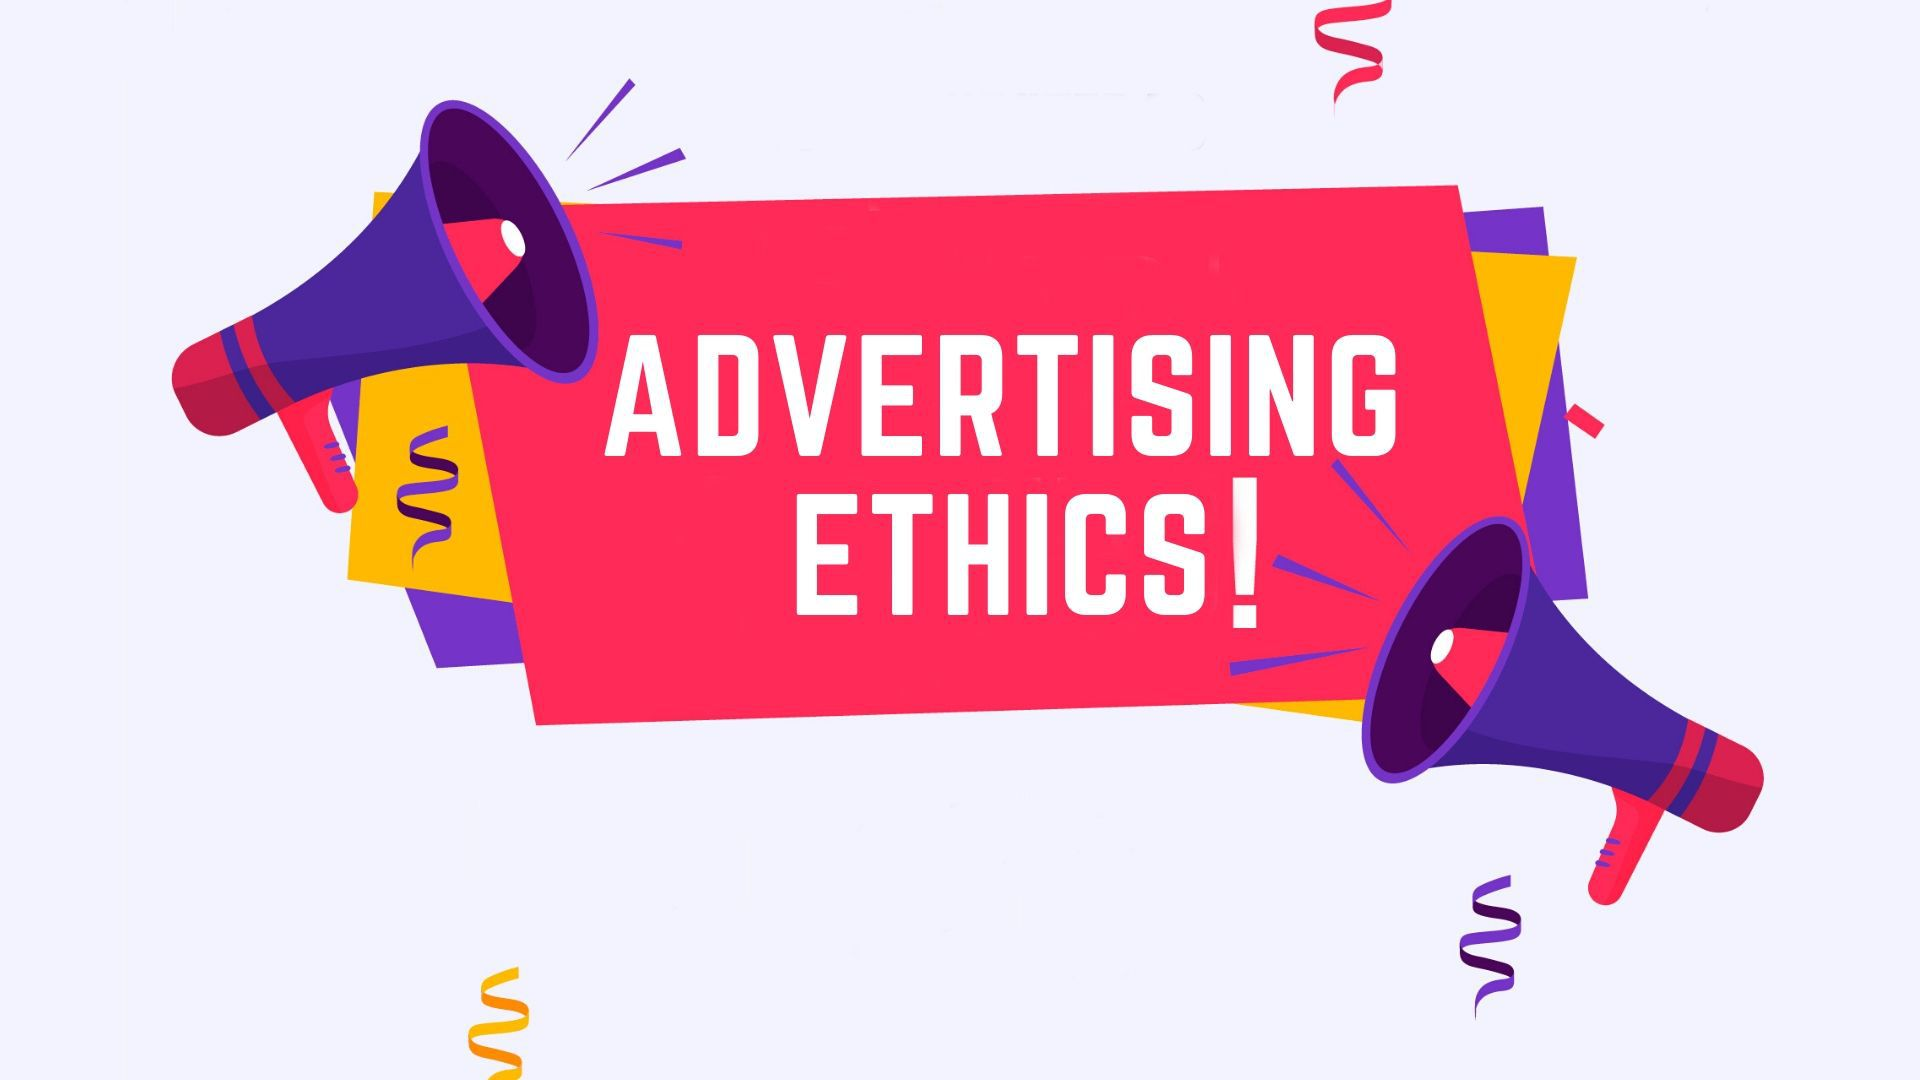 9 Principles upon which Advertising Ethics are based upon